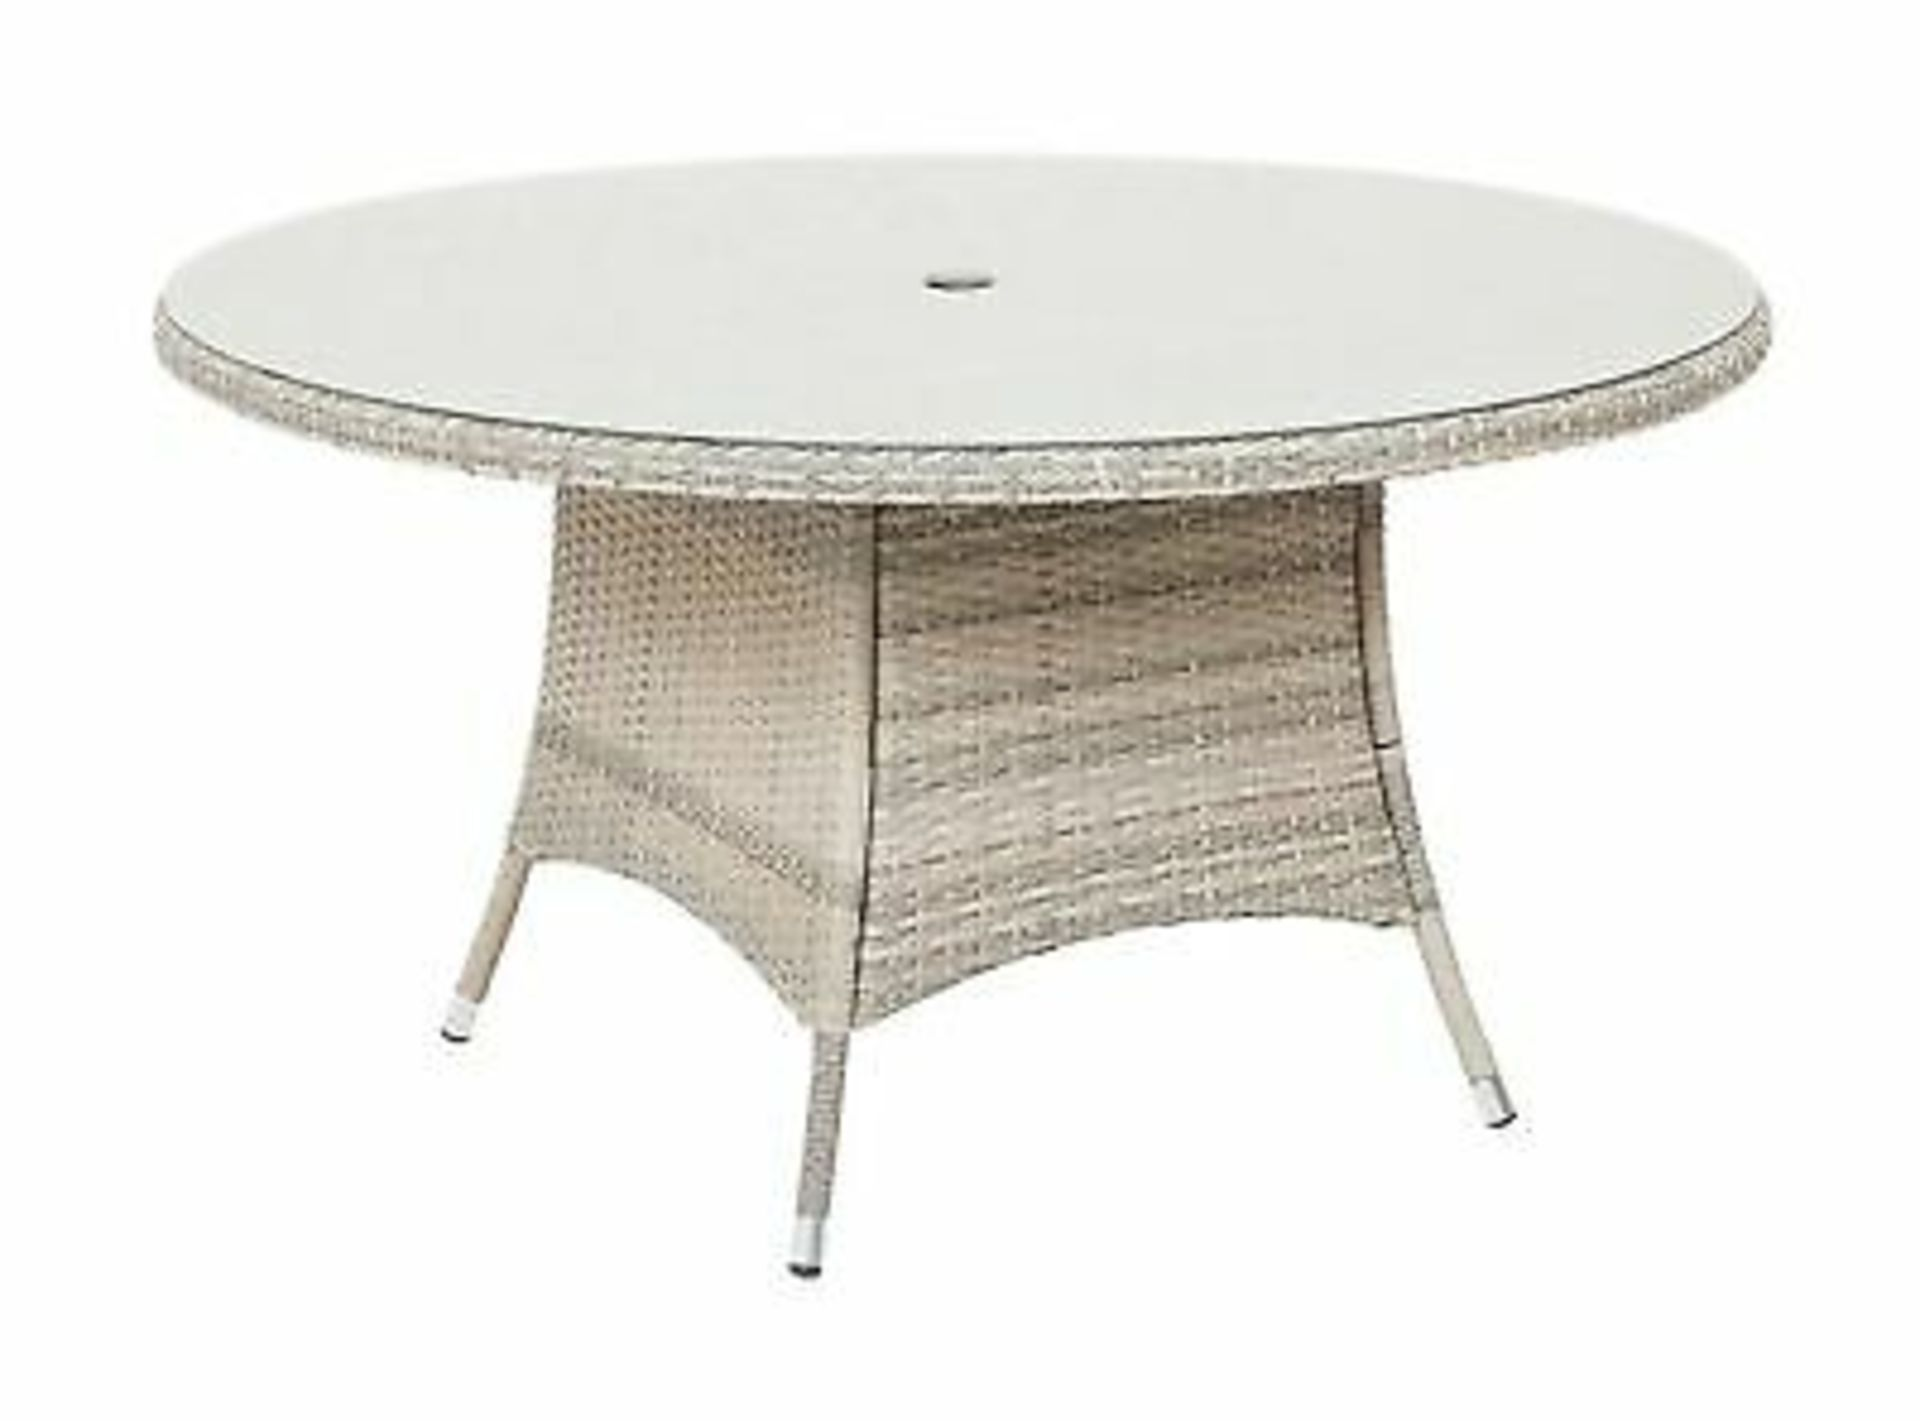 (3C) 2x Items. 1x Round Rattan 6 Seater Garden Patio Table With Mottled Table Top. 1x 2.7M Crank &